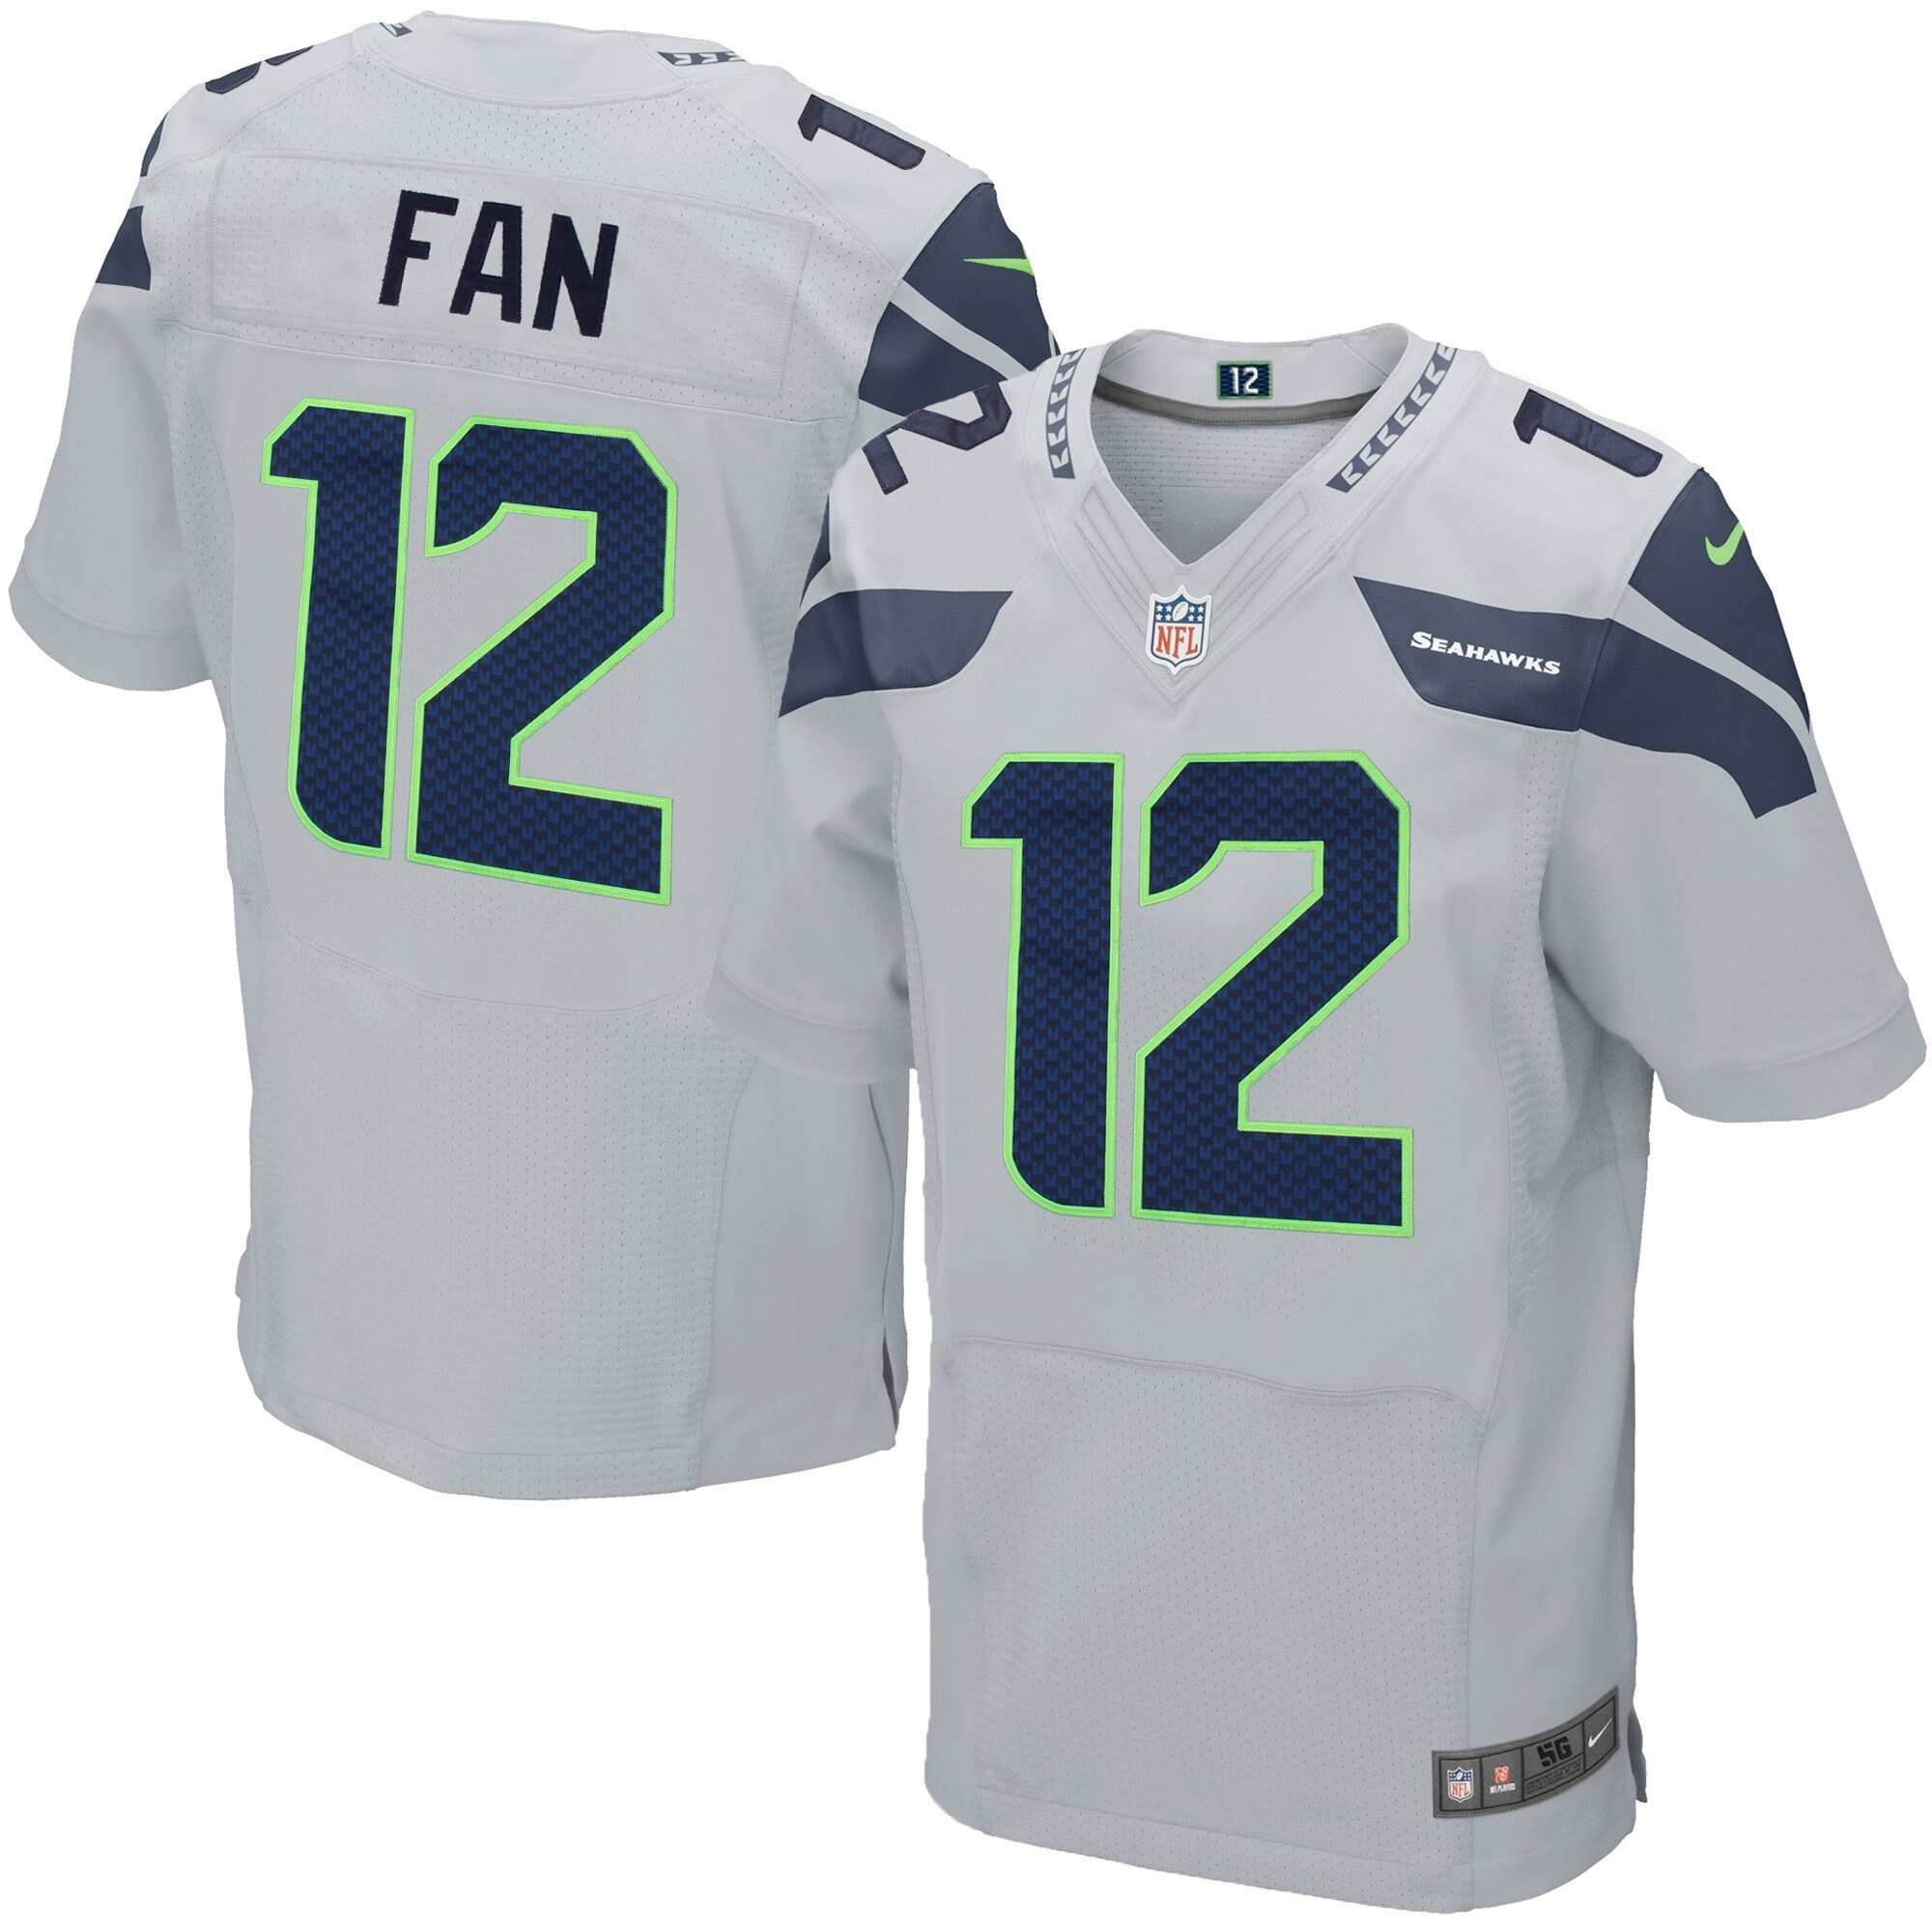 12s Seattle Seahawks Nike Elite Jersey - Gray